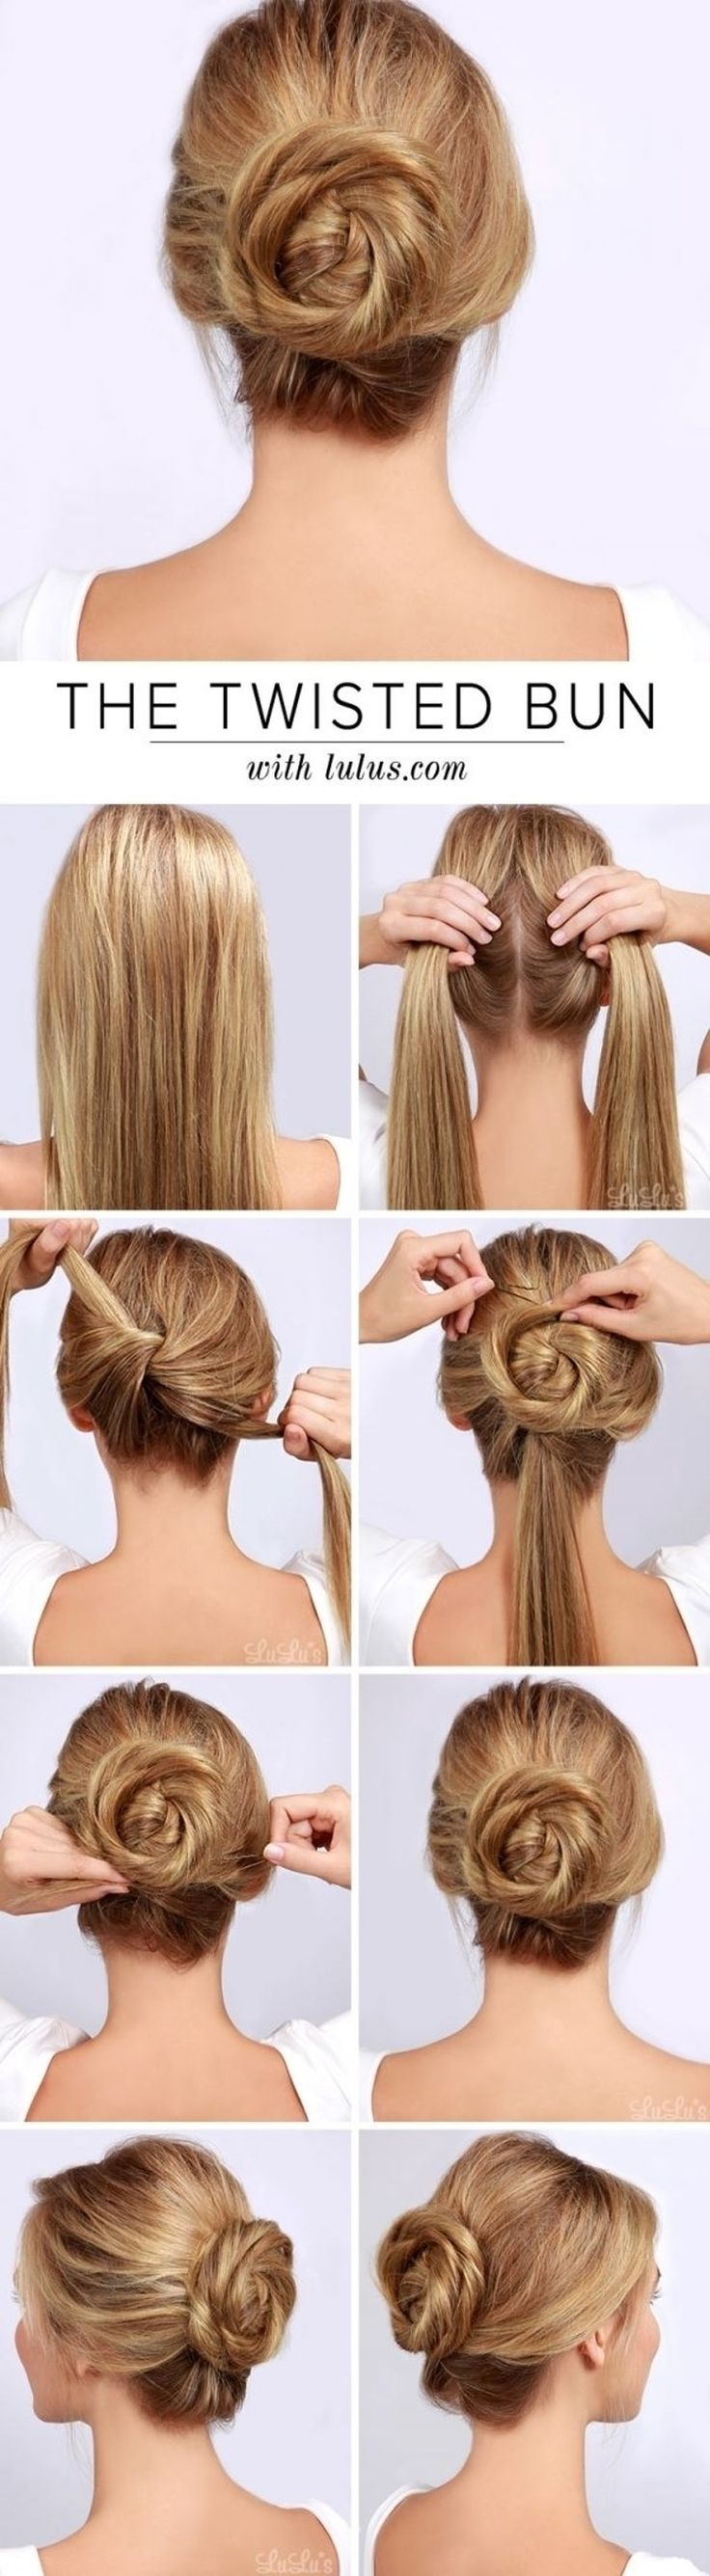 4. #Twisted Bun - 16 Gorgeous Hair #Styles for Lazy Girls like Me ... → Hair #Twist